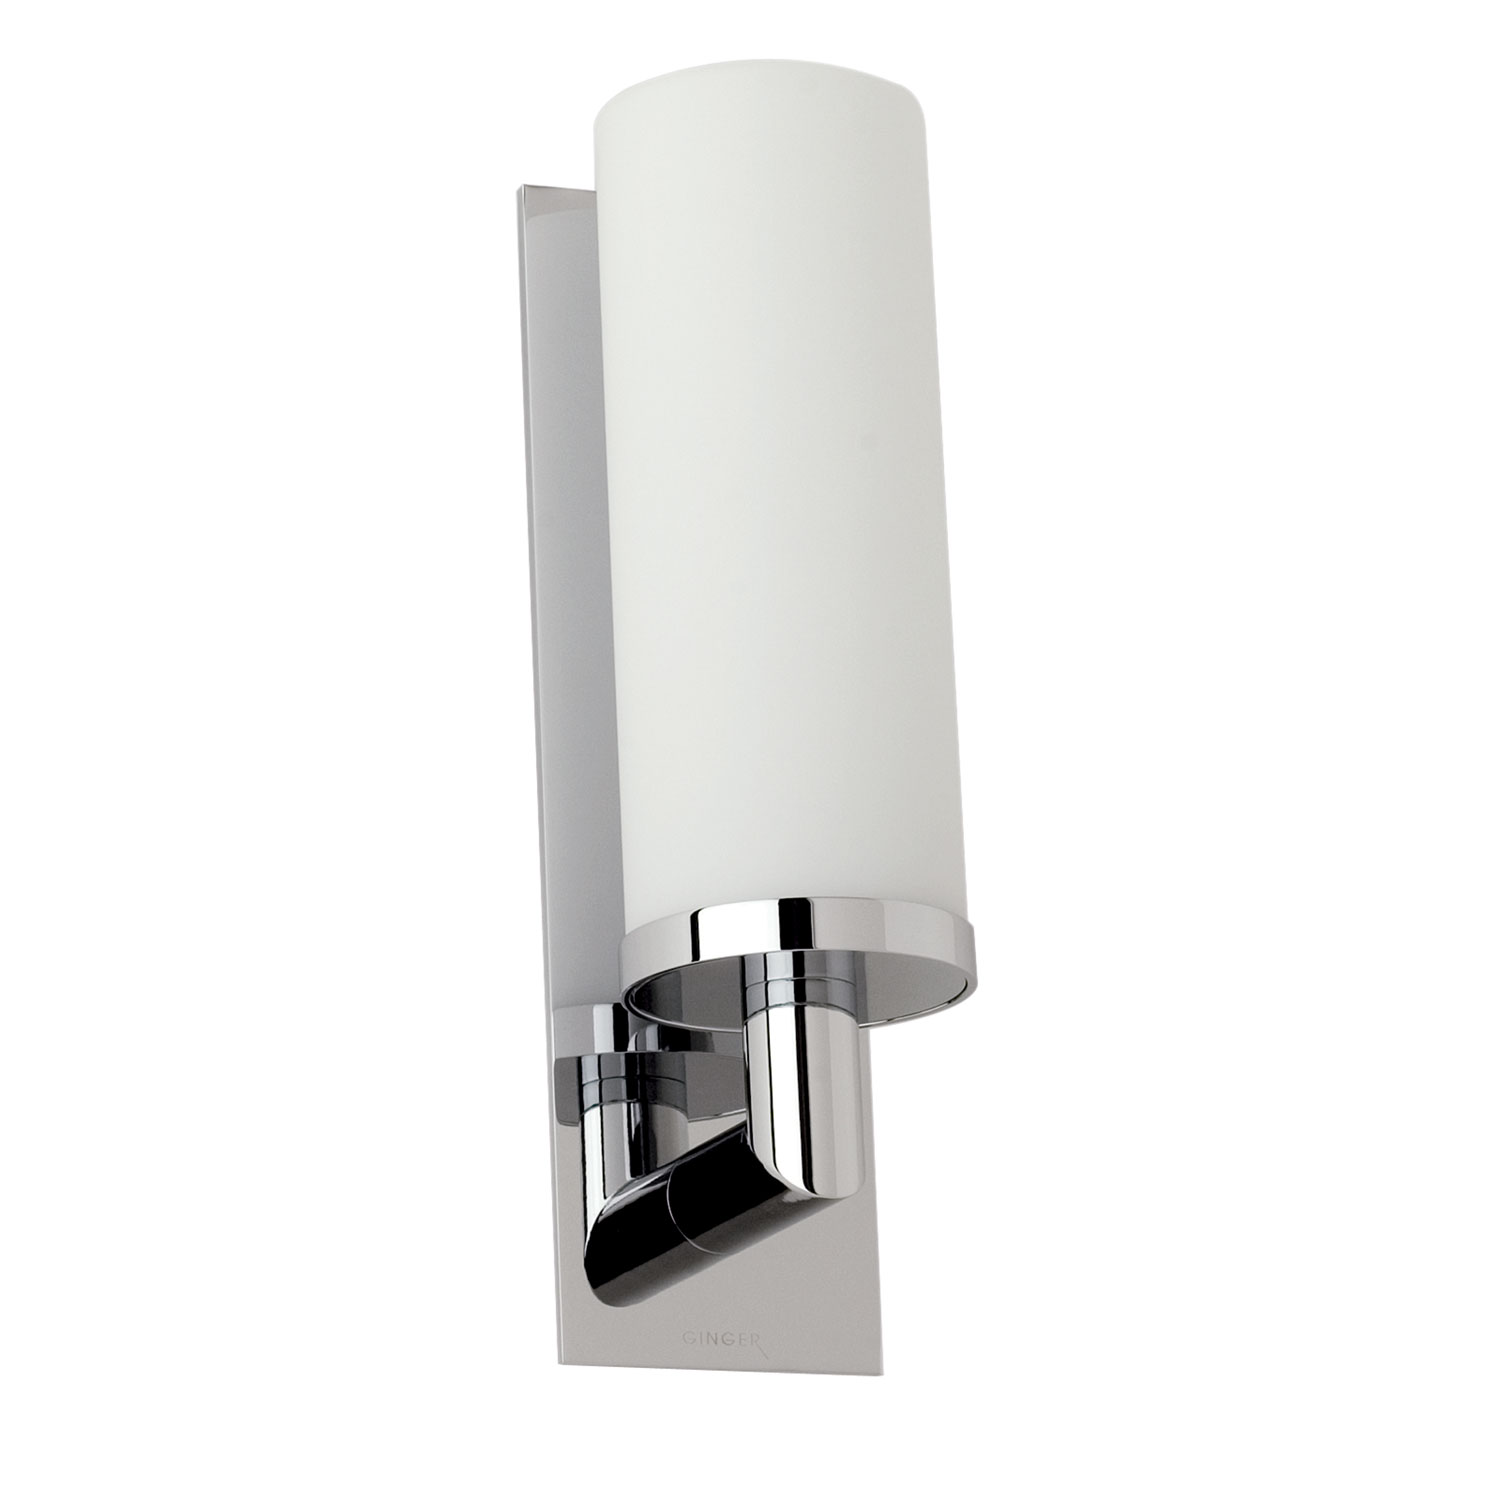 Surface vanity wall sconce by ginger 2881pc surface vanity wall sconce by ginger aloadofball Images